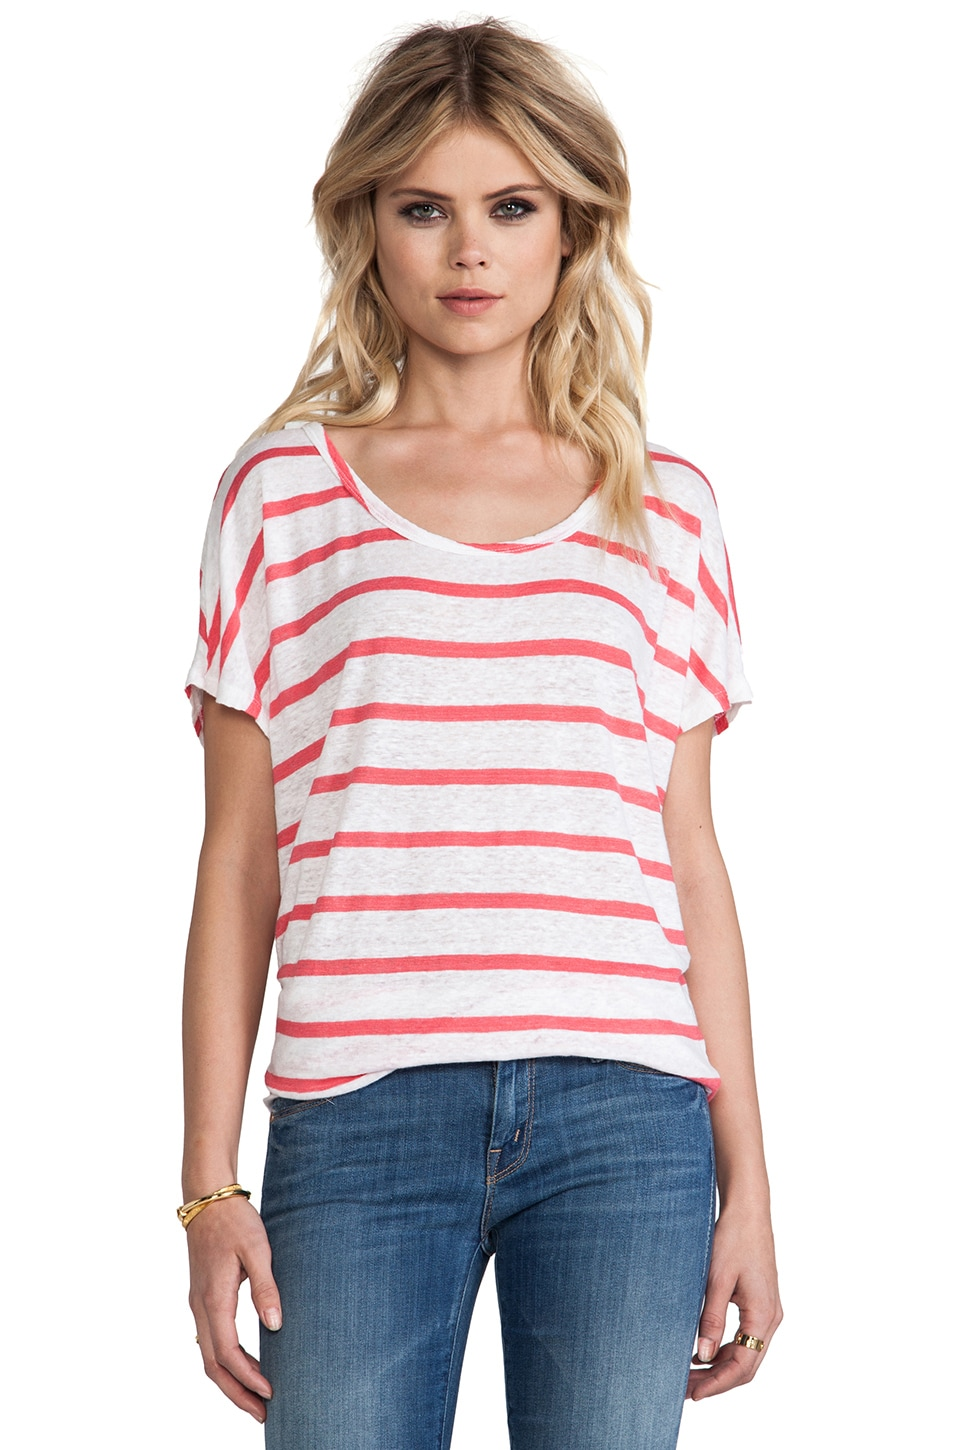 Bobi Linen Stripe Tee in Neon Candy & White